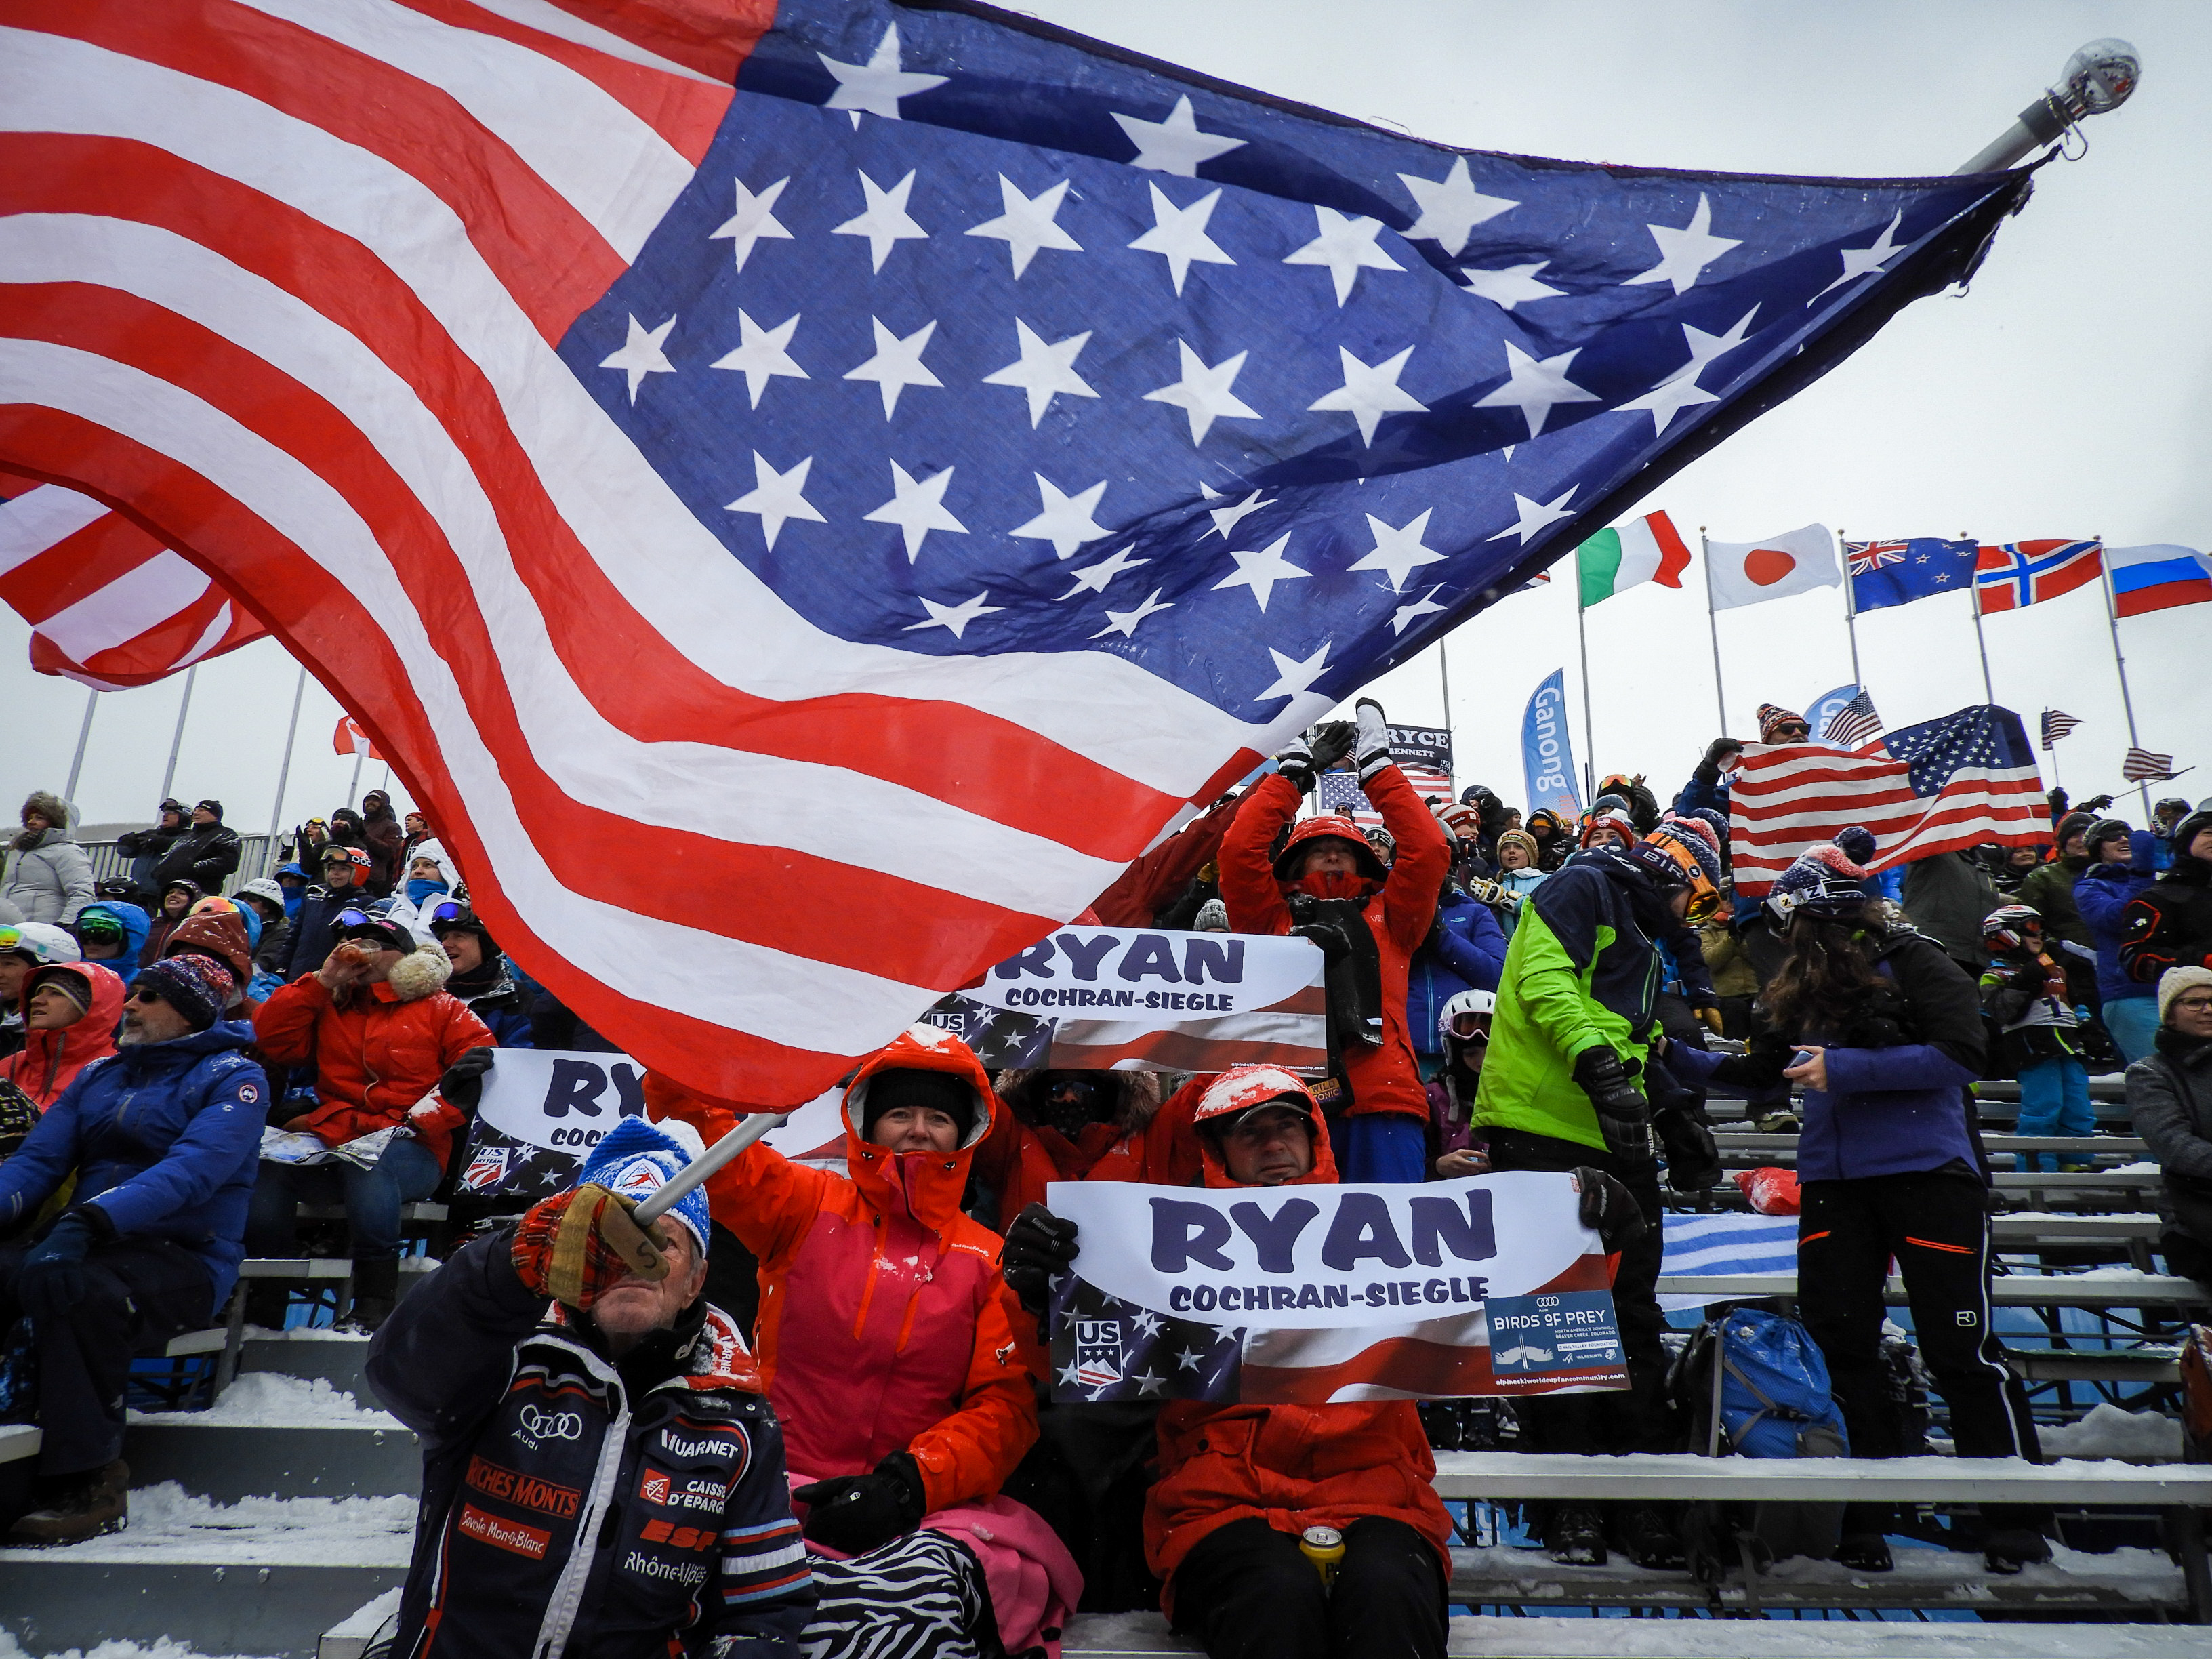 Land Rover U.S. Alpine Ski Team Named